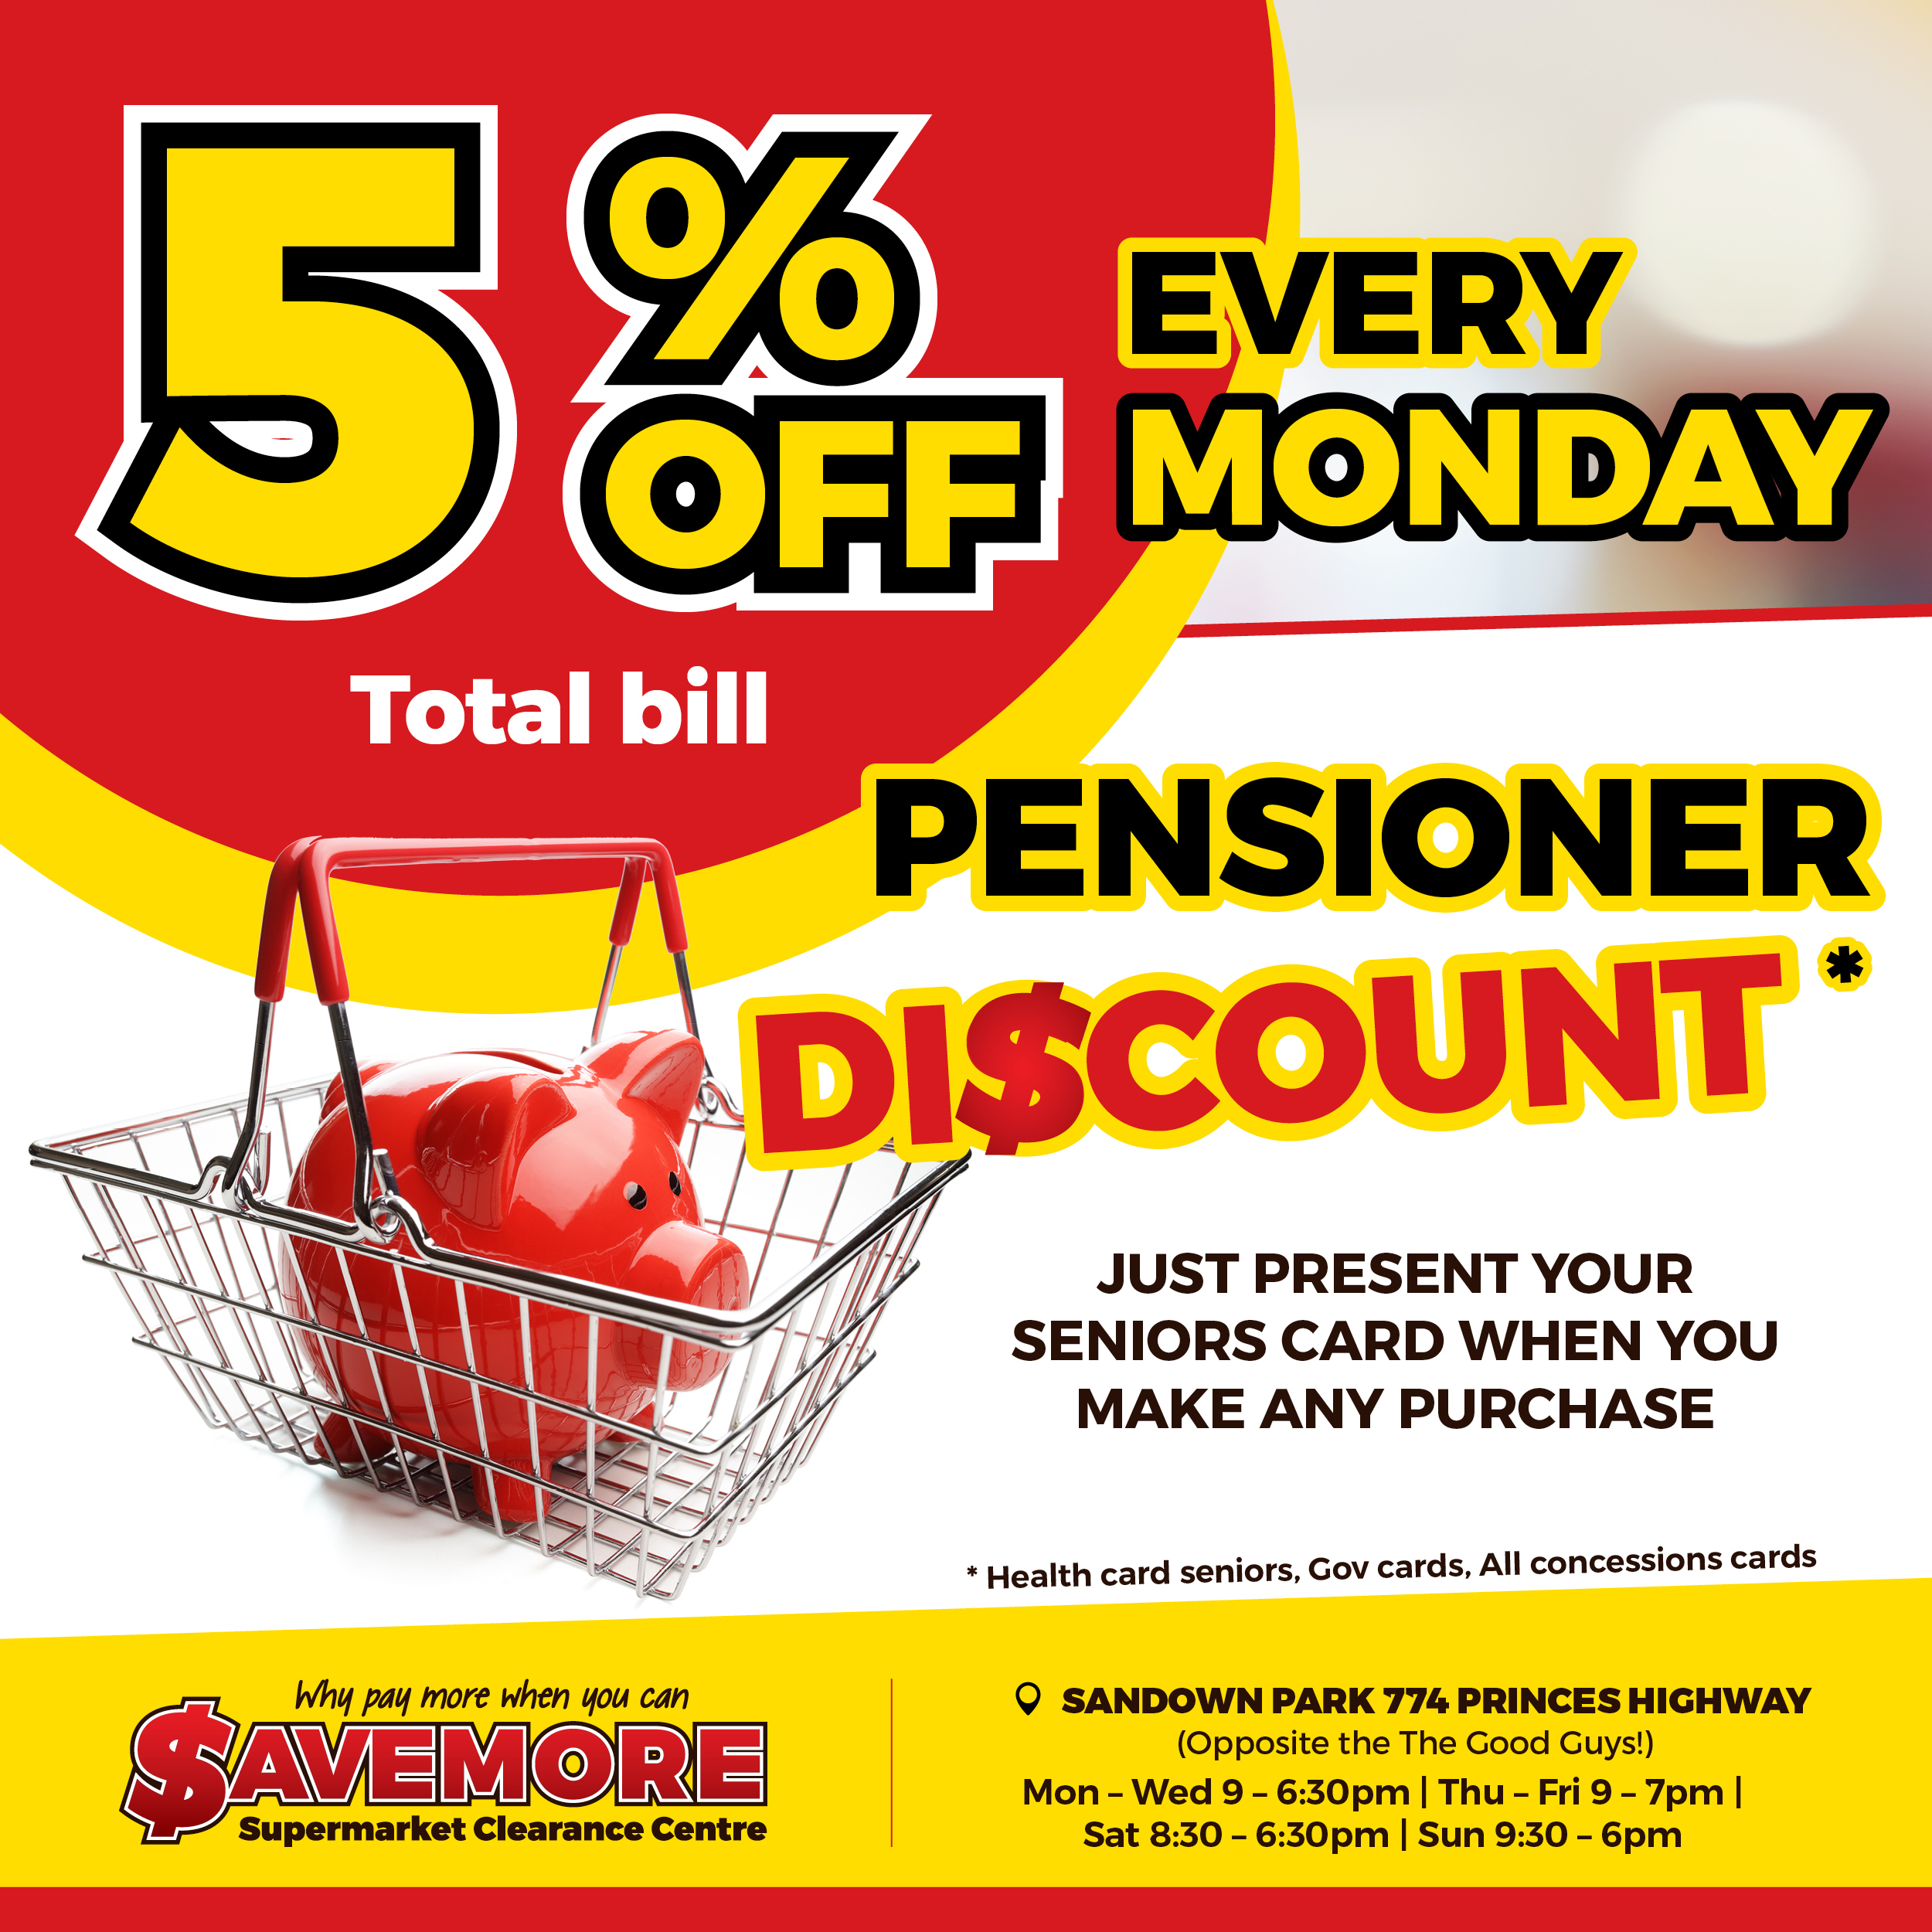 Savemore Supermarket Clearance Centre | MONDAY DISCOUNT